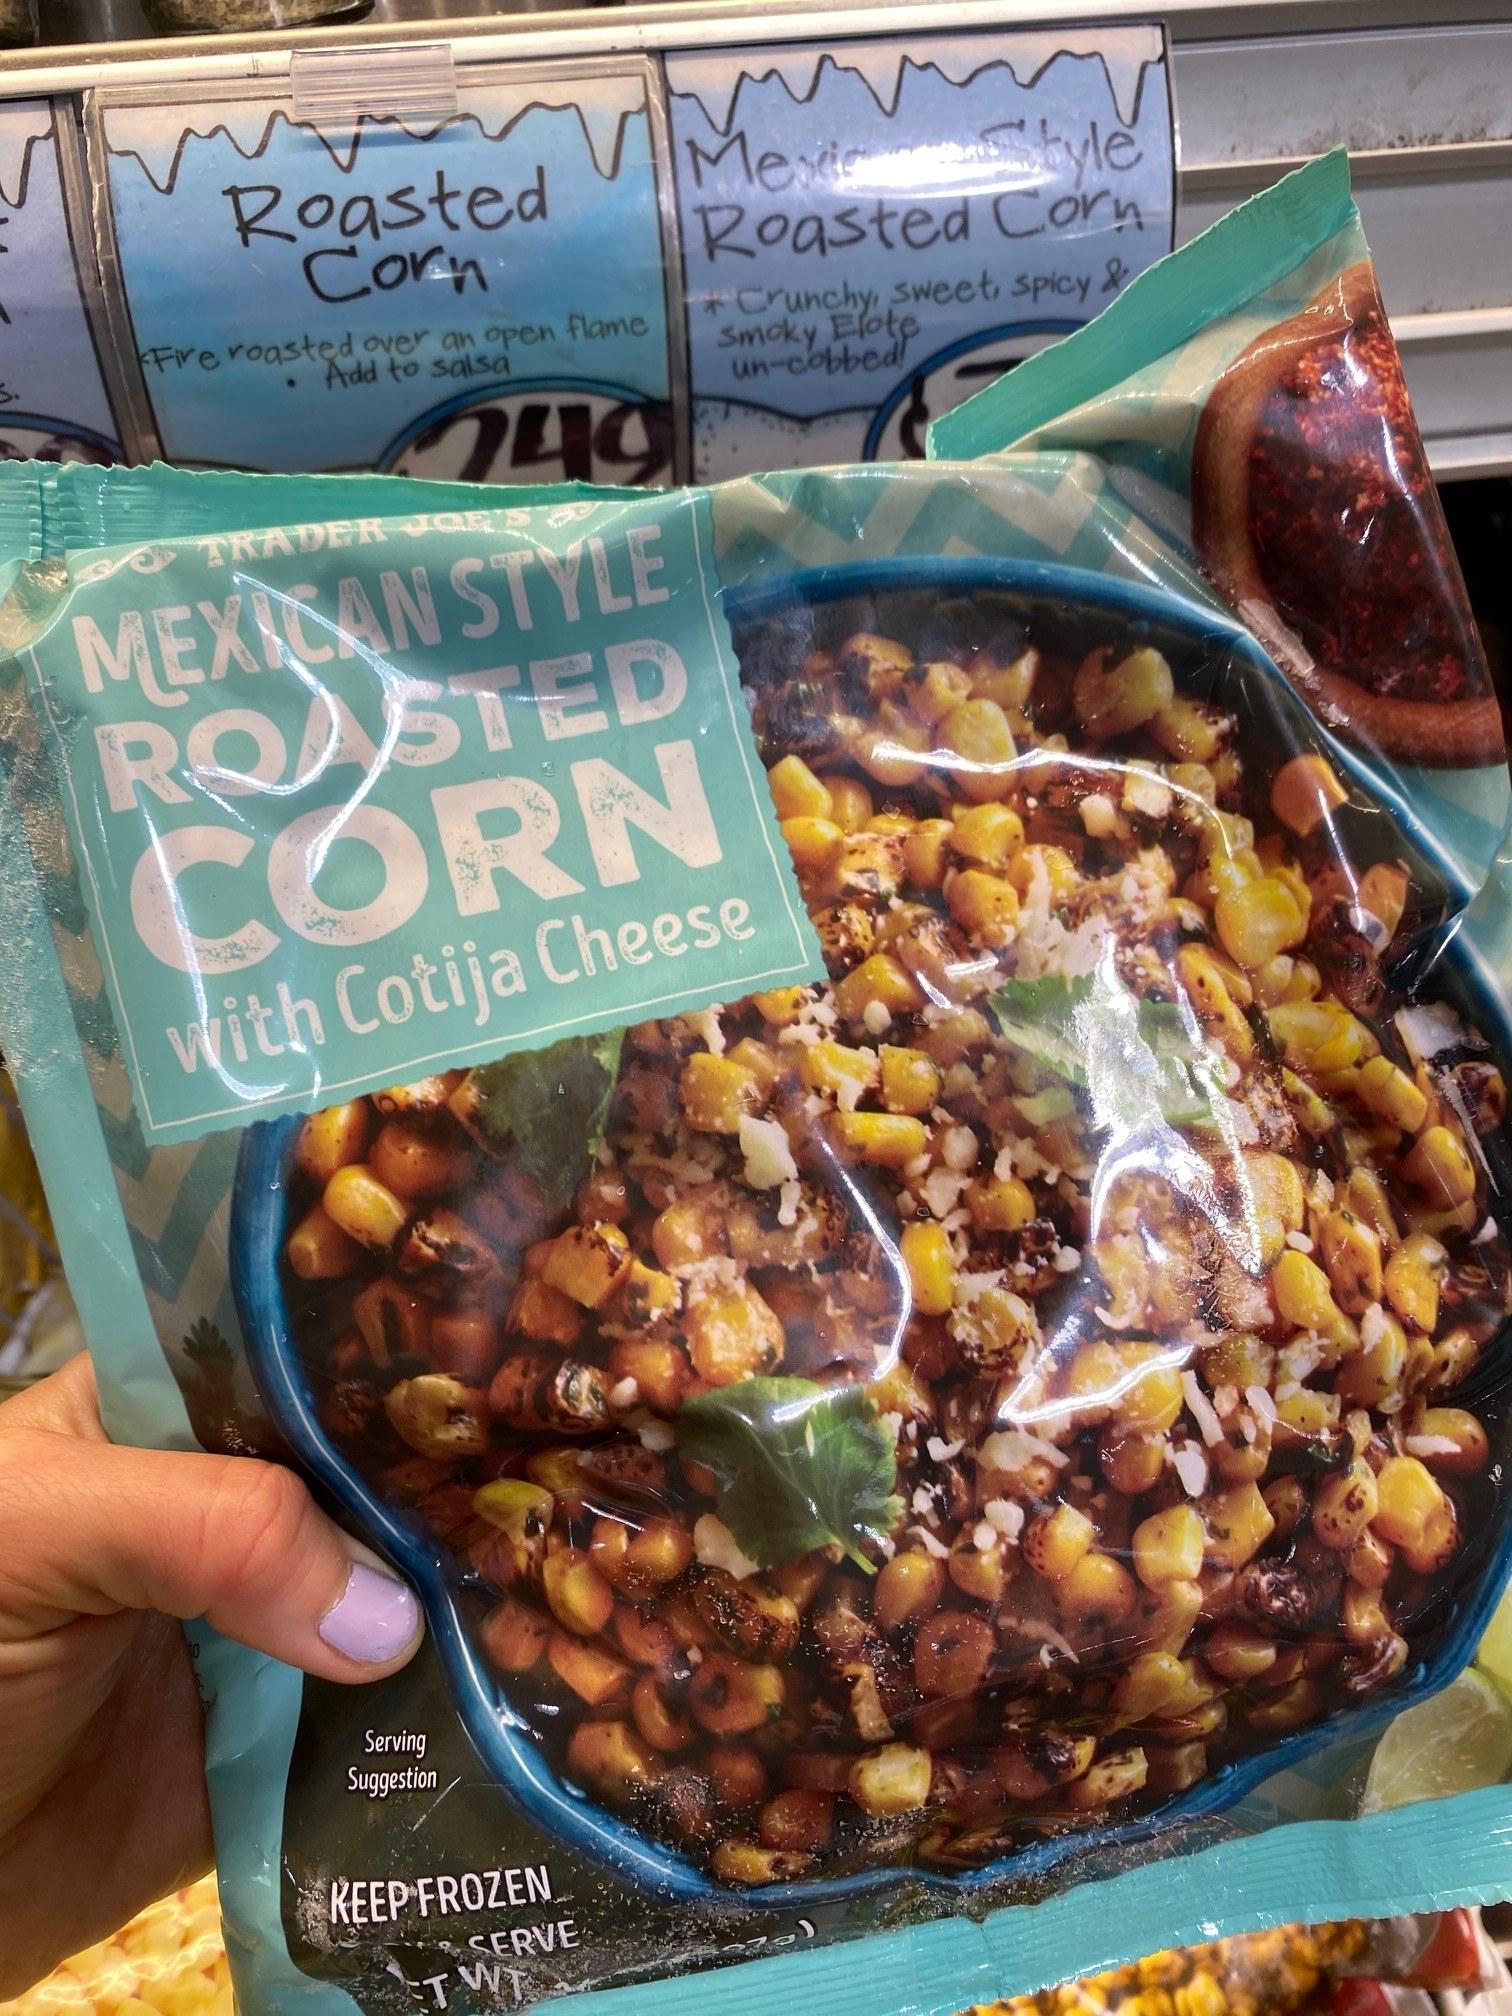 A bag of Mexican-style roasted corn with Cotija cheese from Trader Joe's.